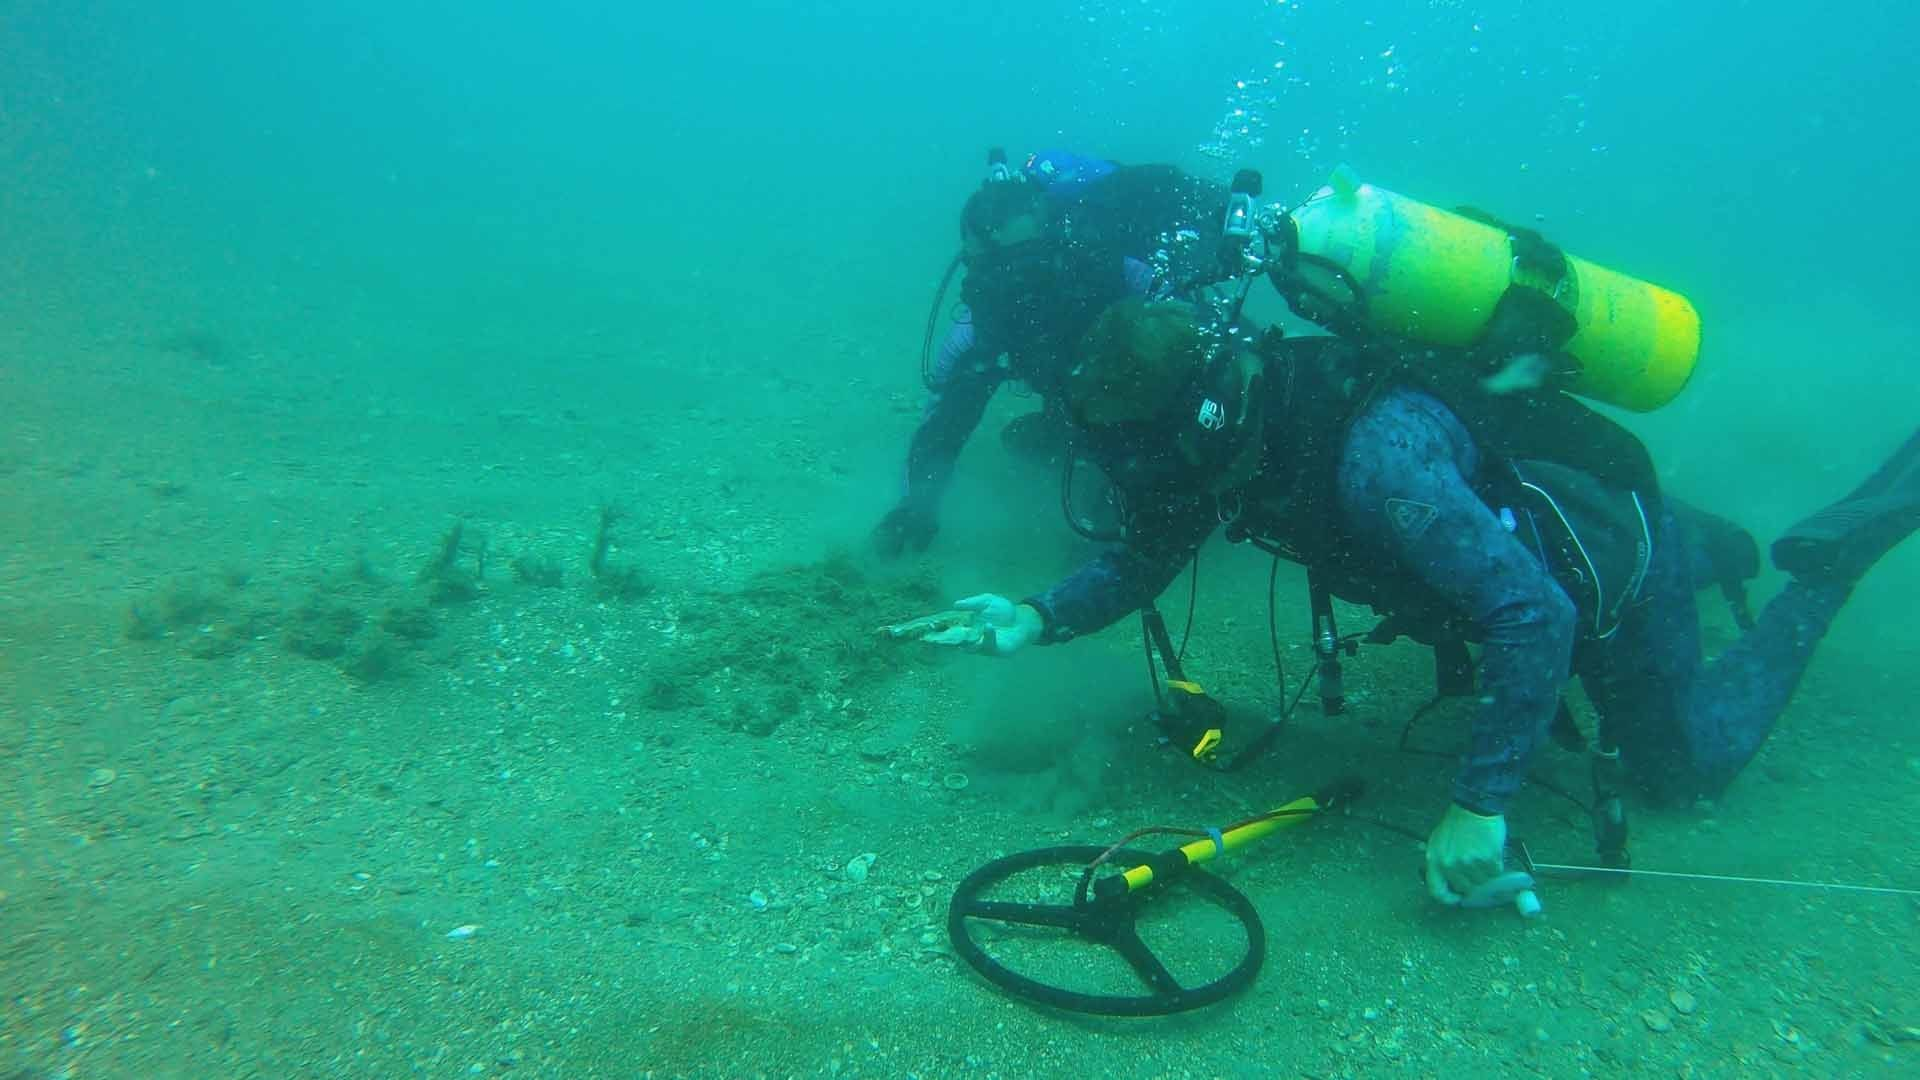 Seafarer-Exploration-4-Diver-metal-detecting-and-examining-and-artifact-on-the-ocean-floor-with-great-visibility